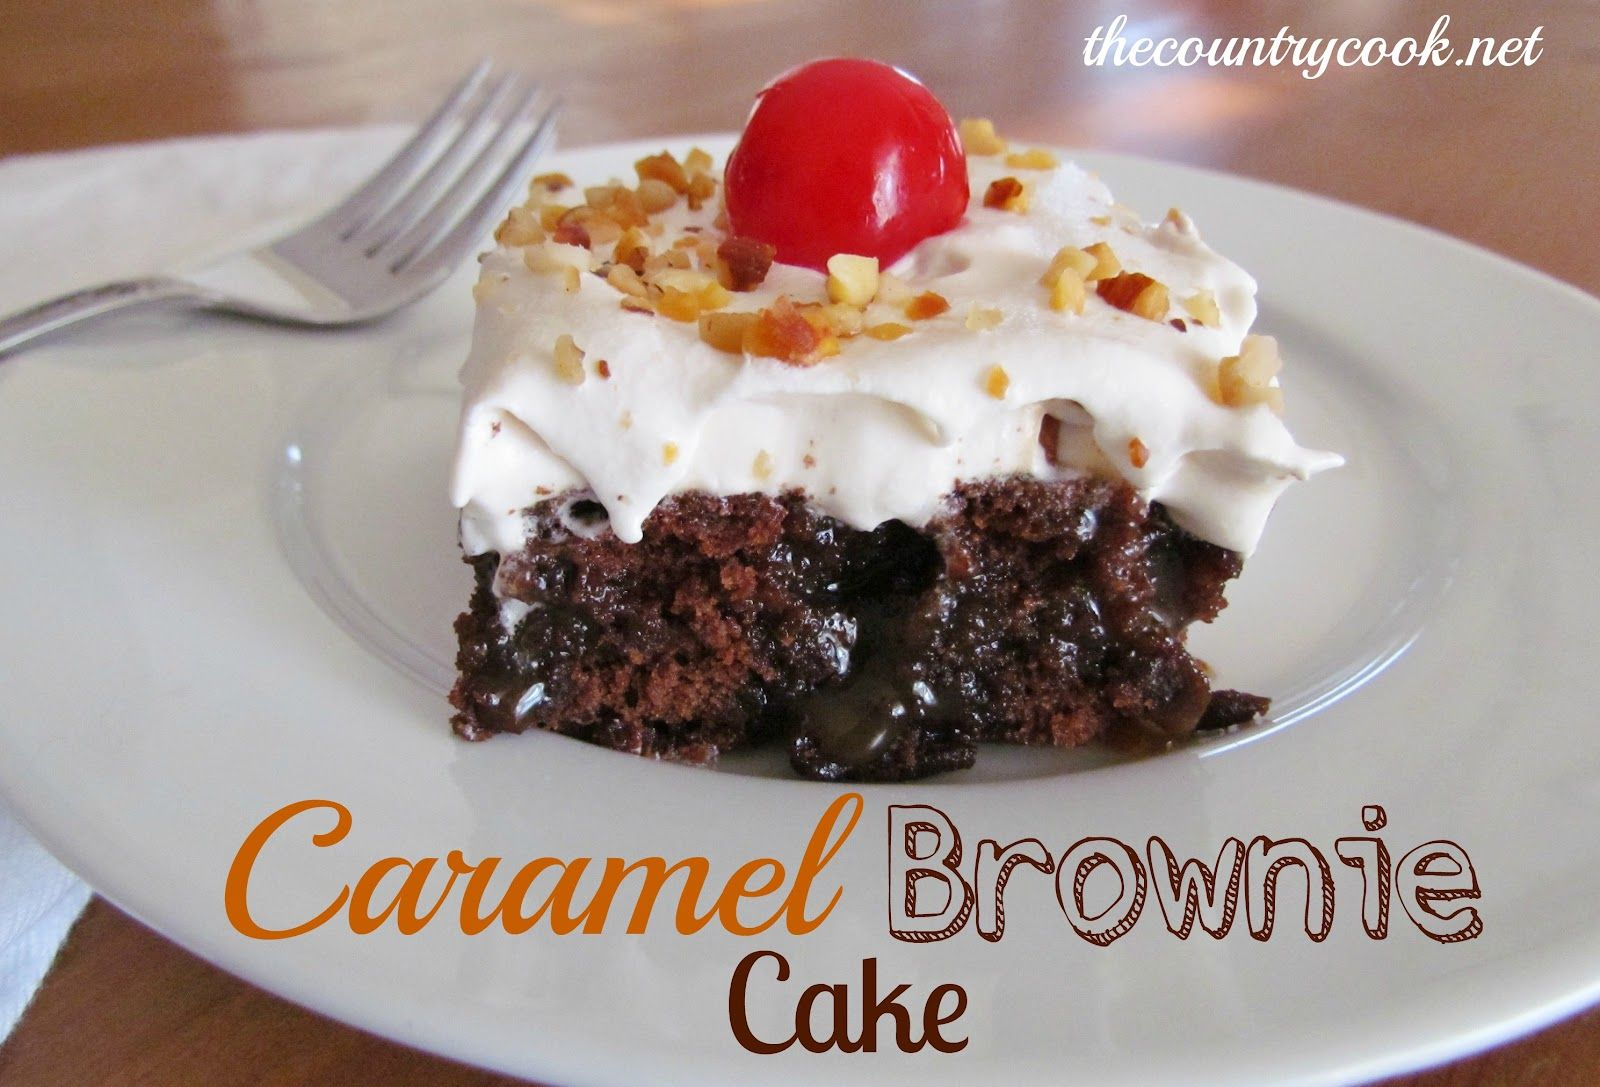 Easy Caramel Brownie Cake Recipe With Images Desserts No